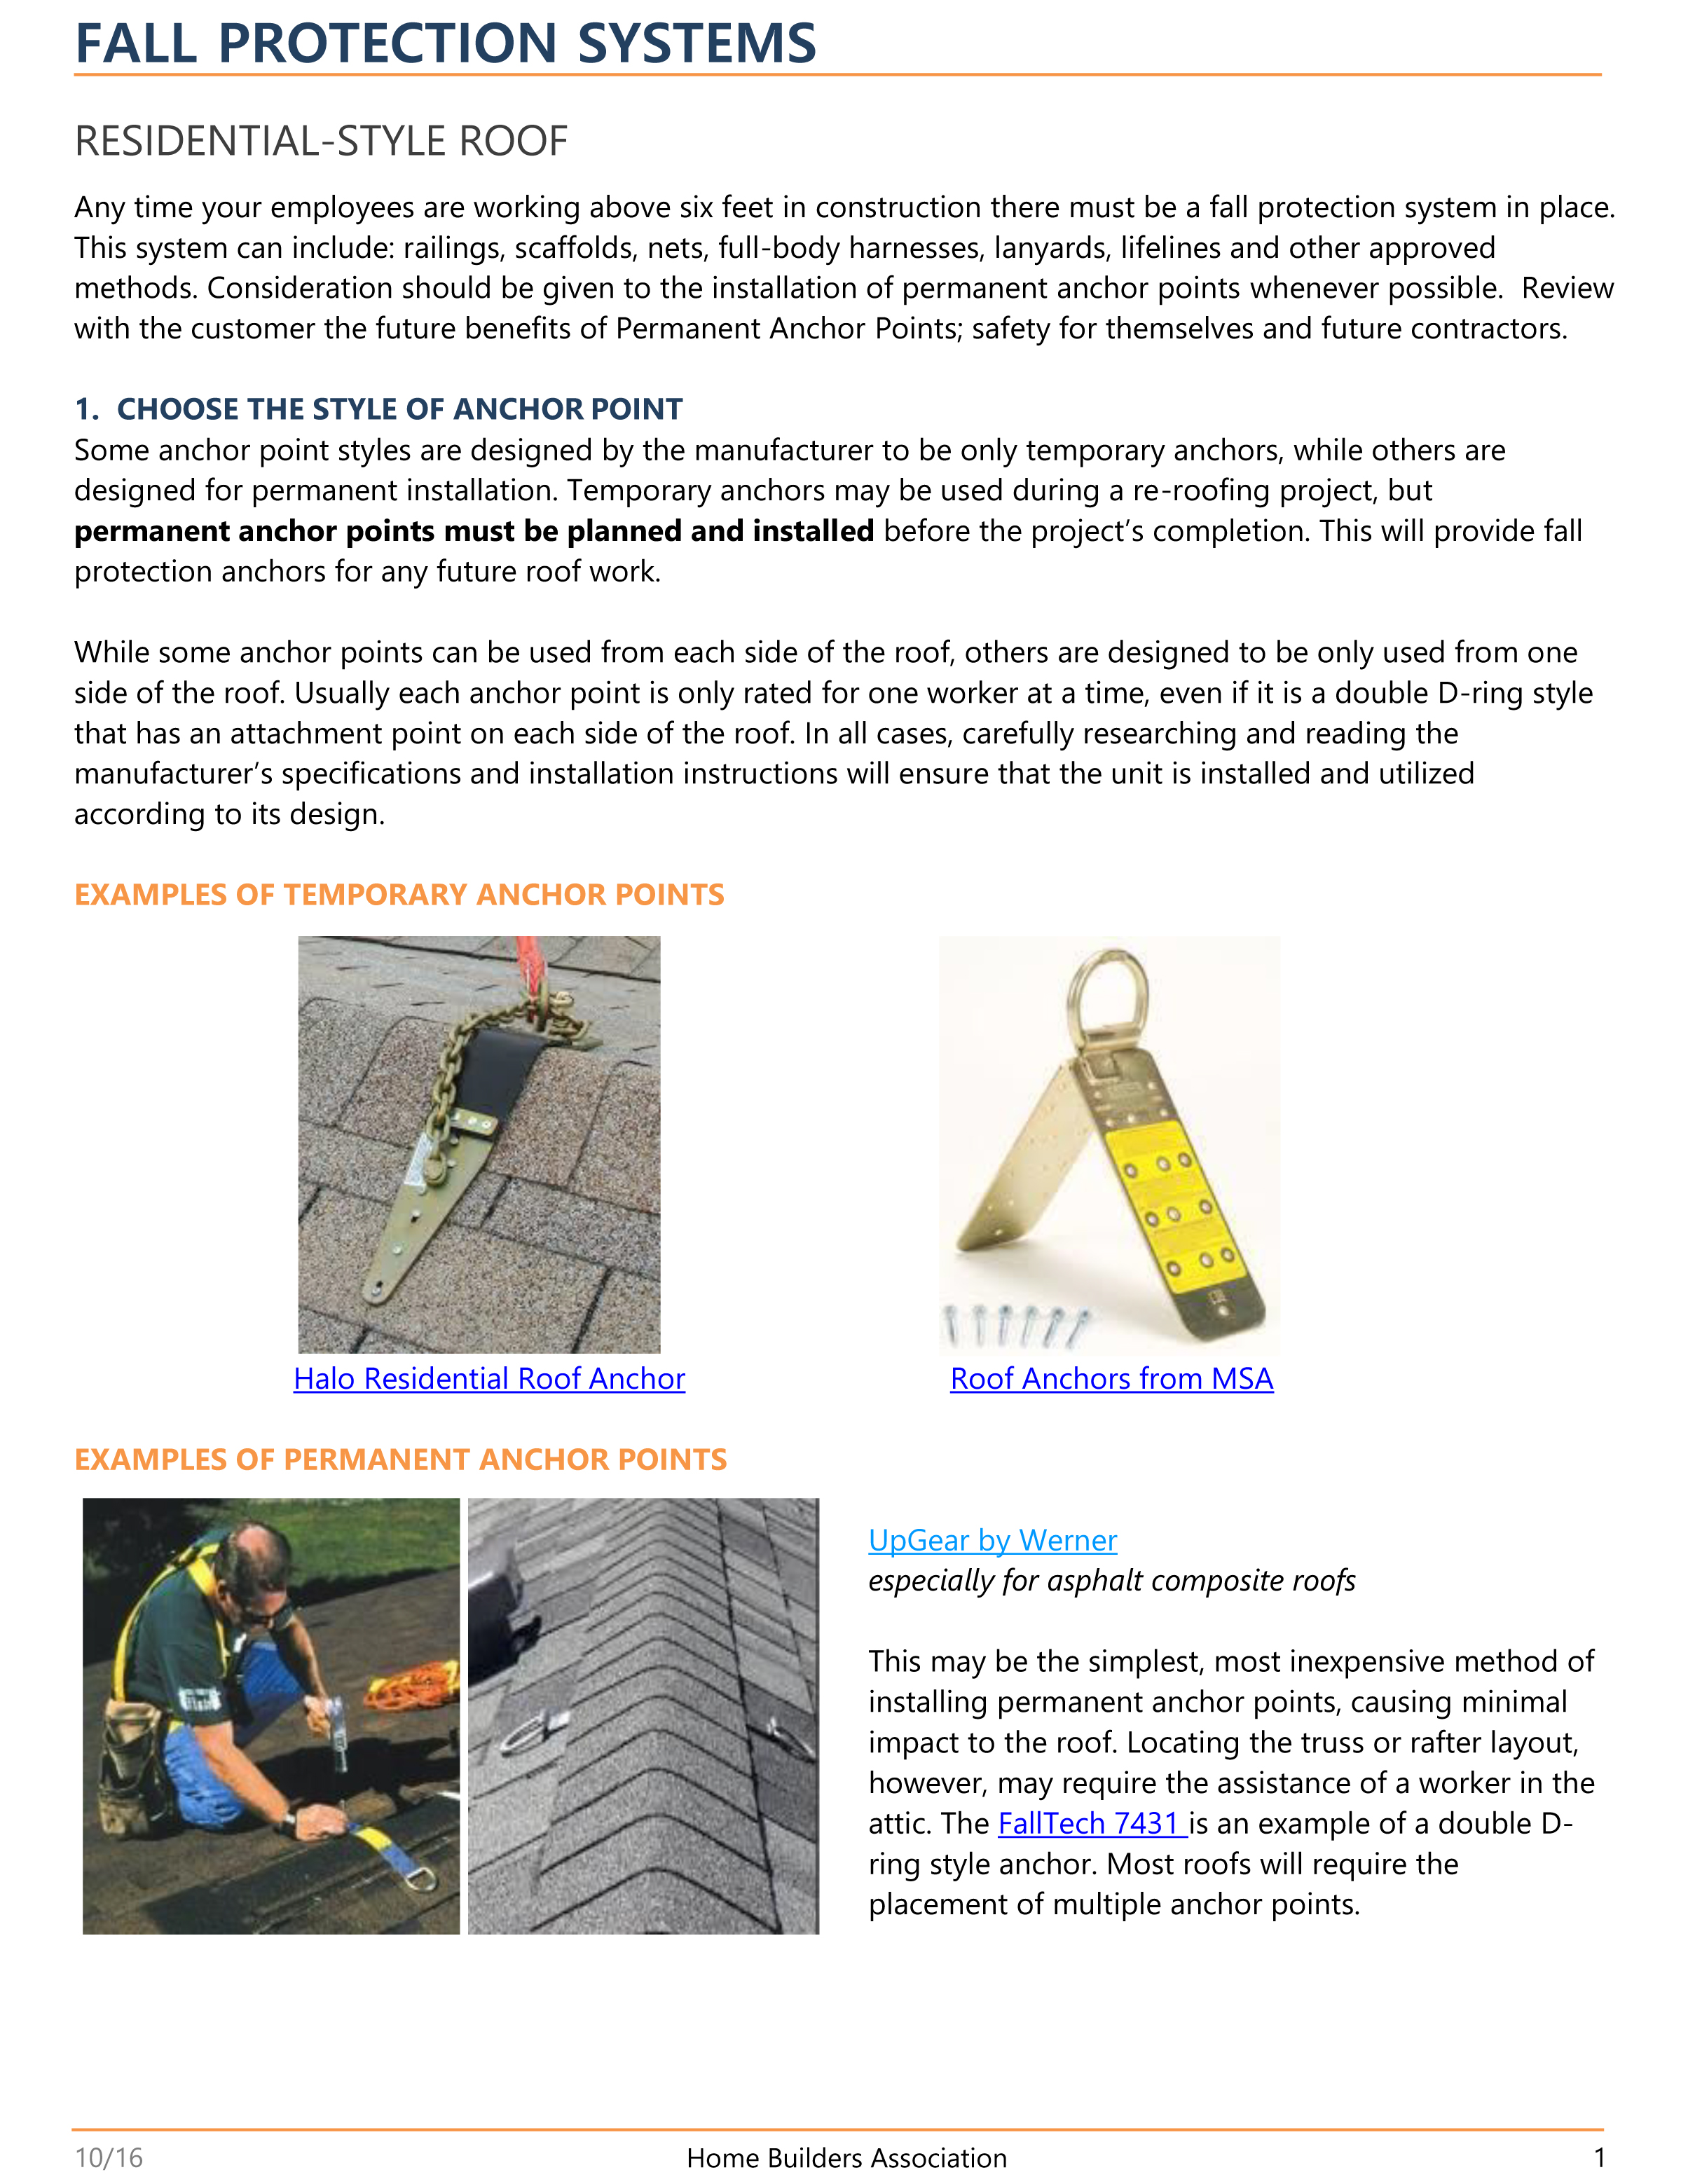 Fall Protection Guide-2